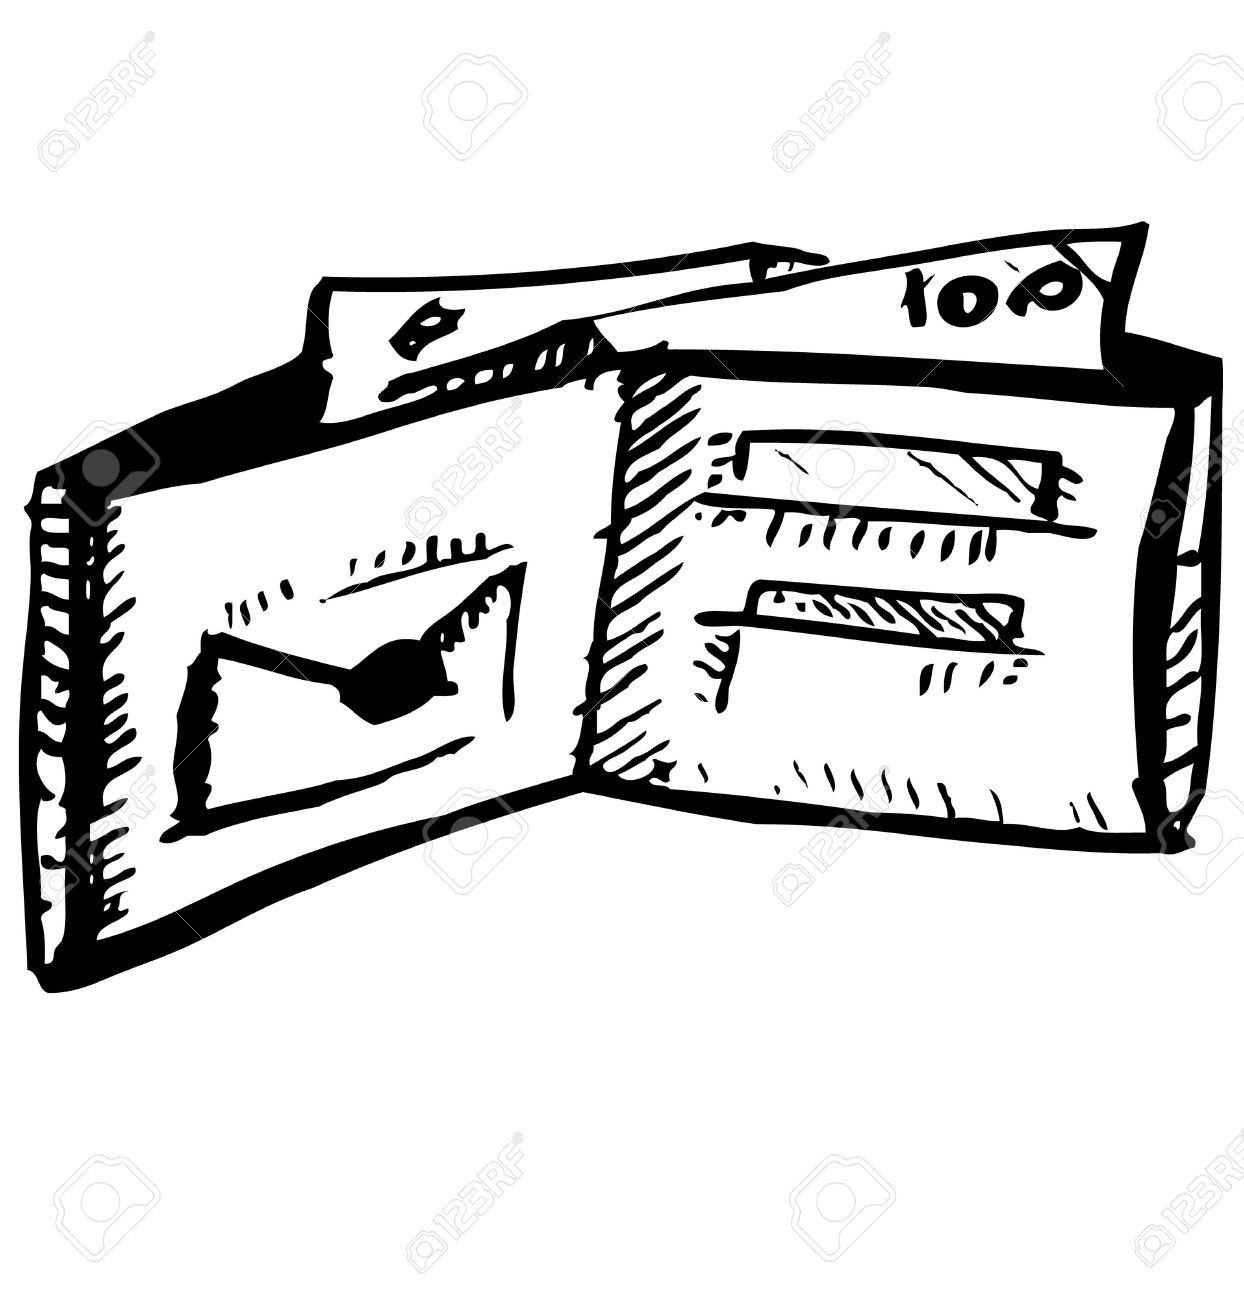 Wallet Clipart Black And White.